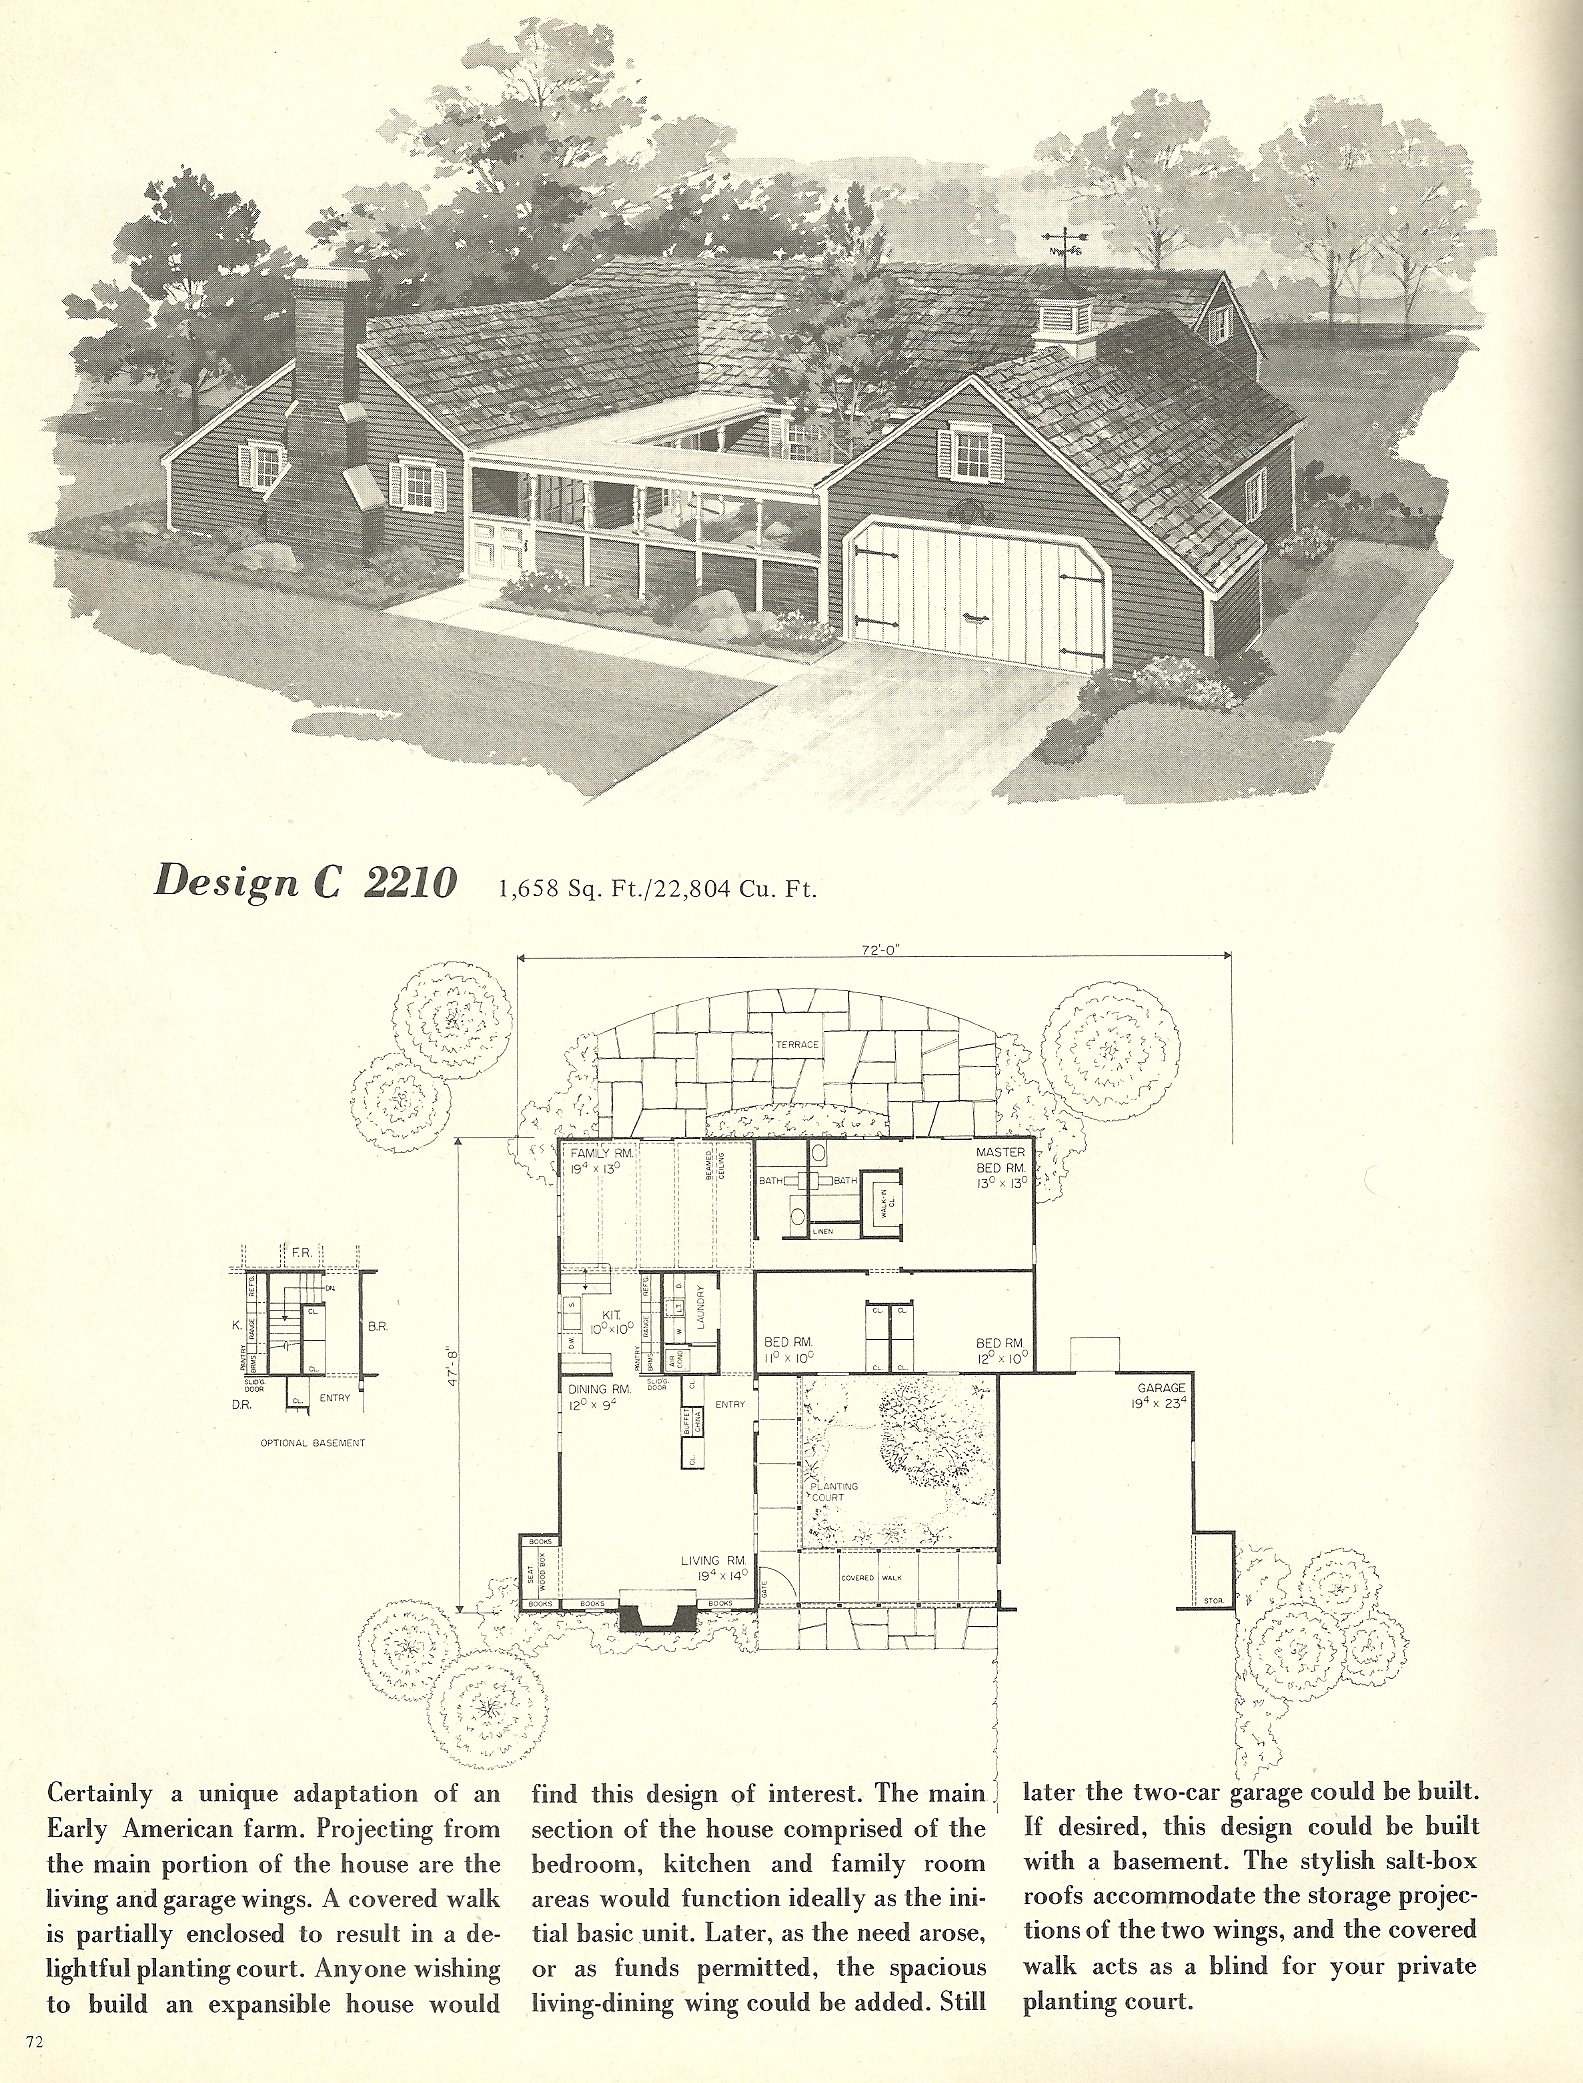 Vintage house plans 2210 antique alter ego for 1960 house plans